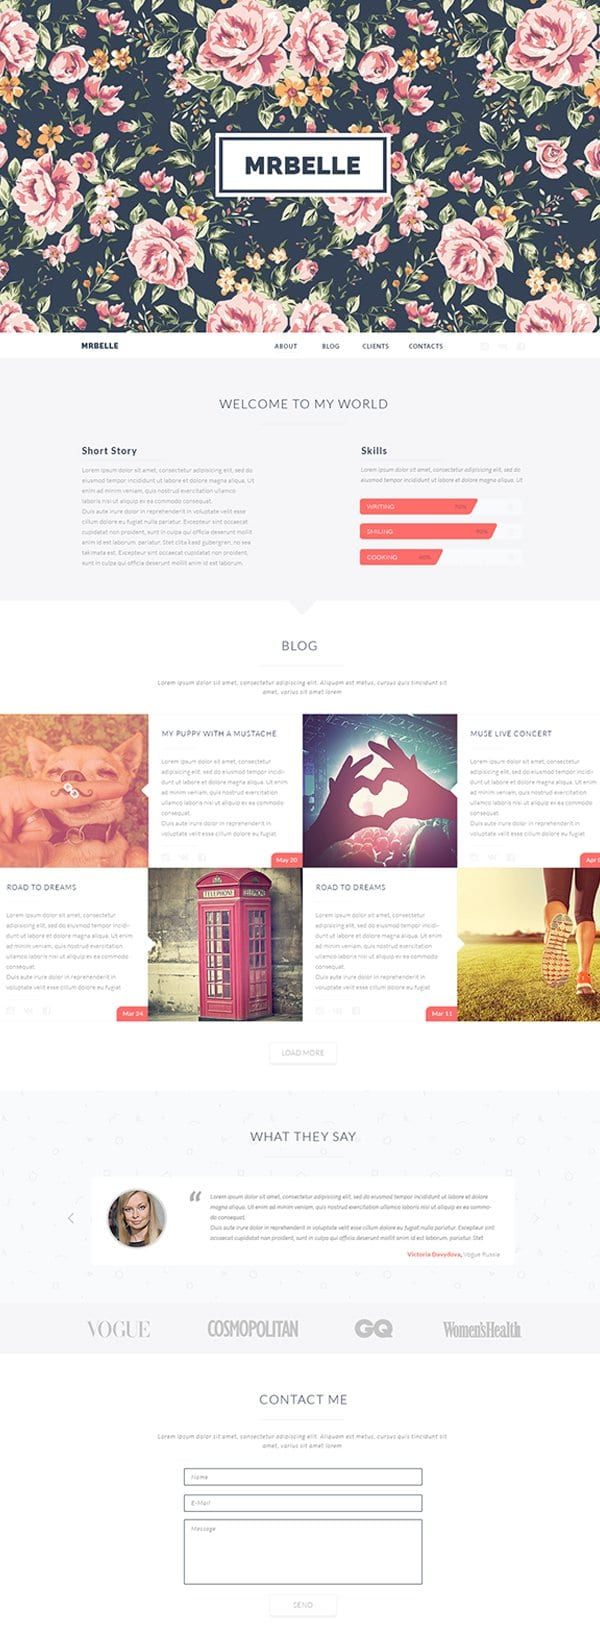 Mrbelle One Page Template PSD